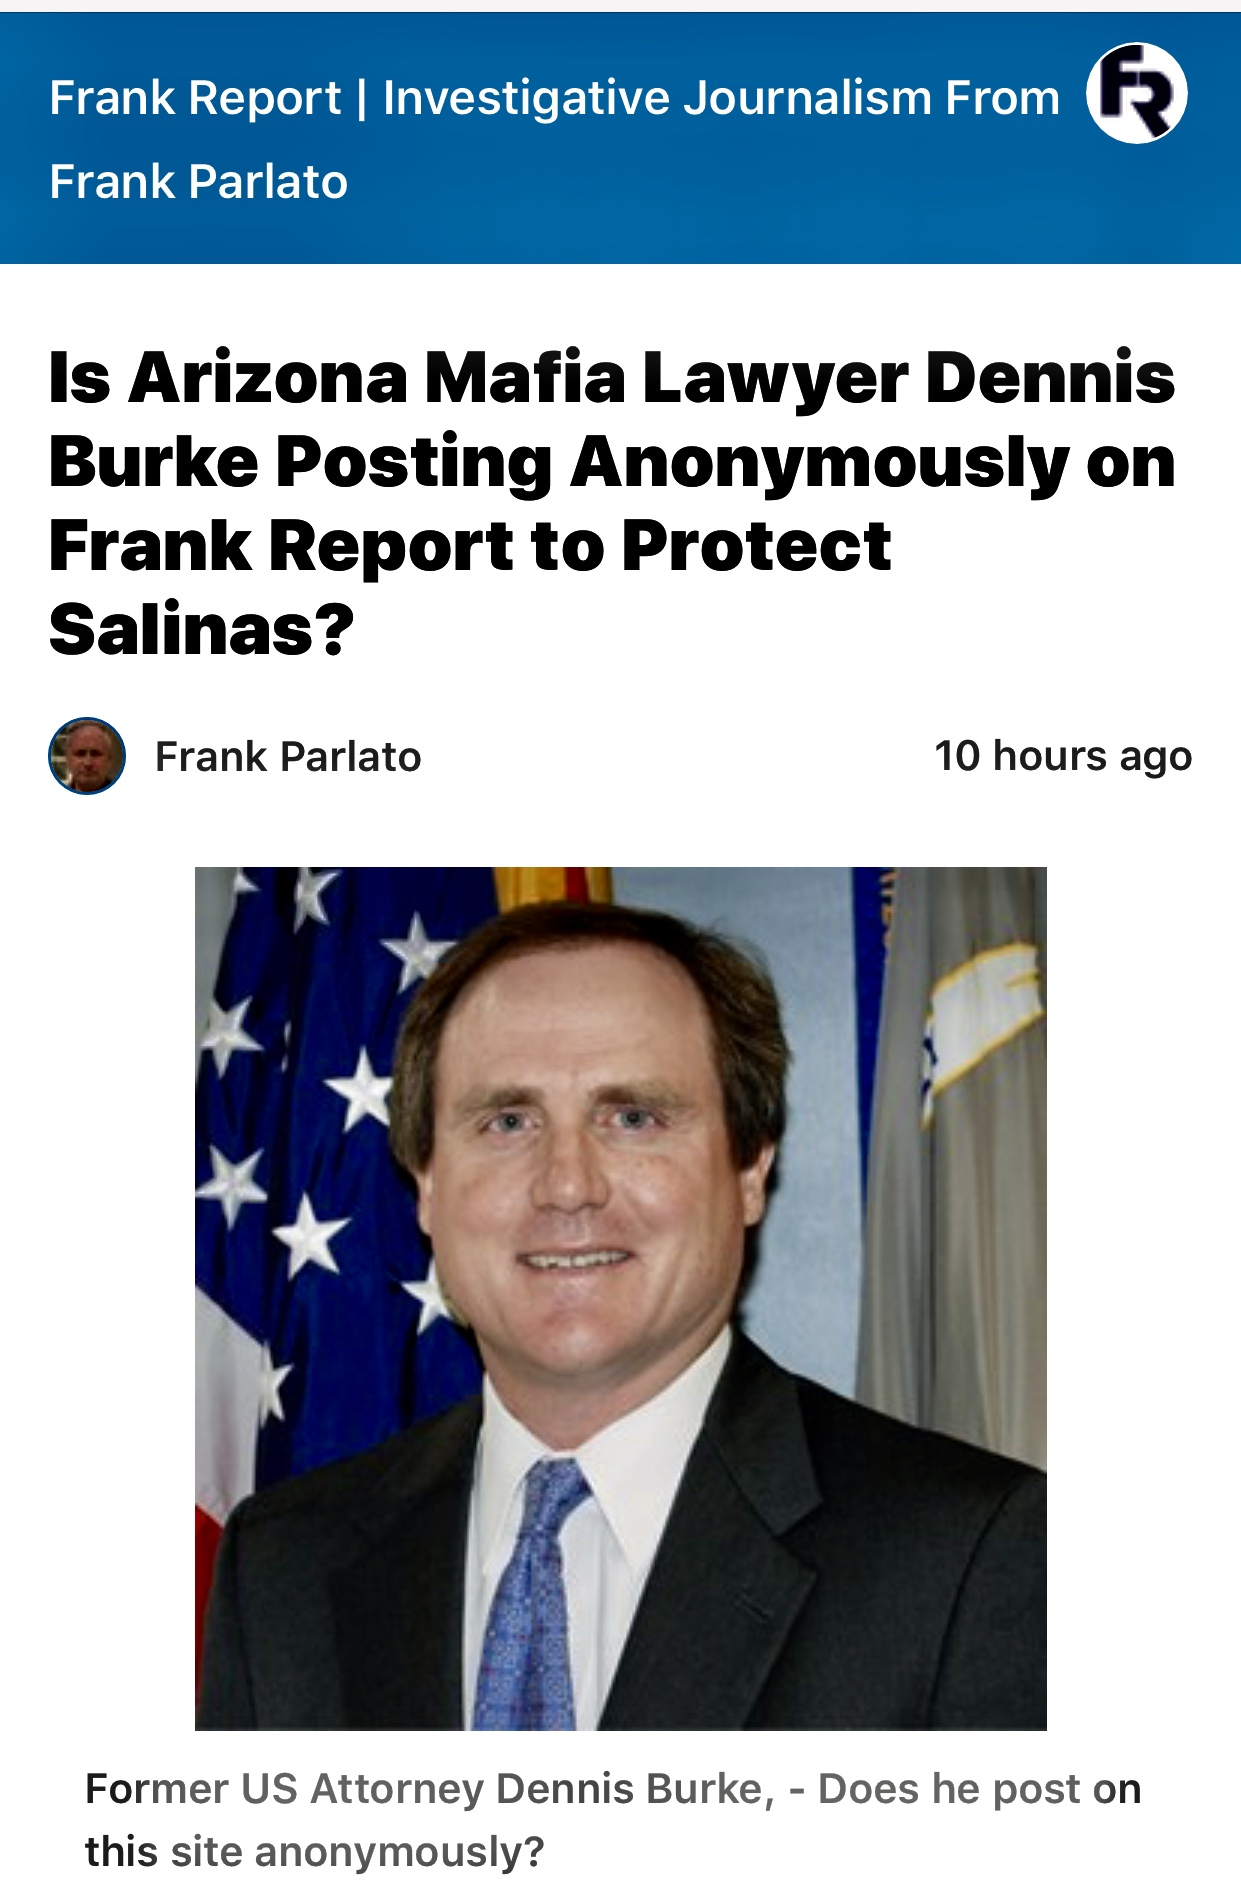 Is Arizona Mafia Lawyer Dennis Burke Posting Anonymously on Frank Report to Protect Salinas? – Frank Report | Investigative Journalism From Frank Parlato